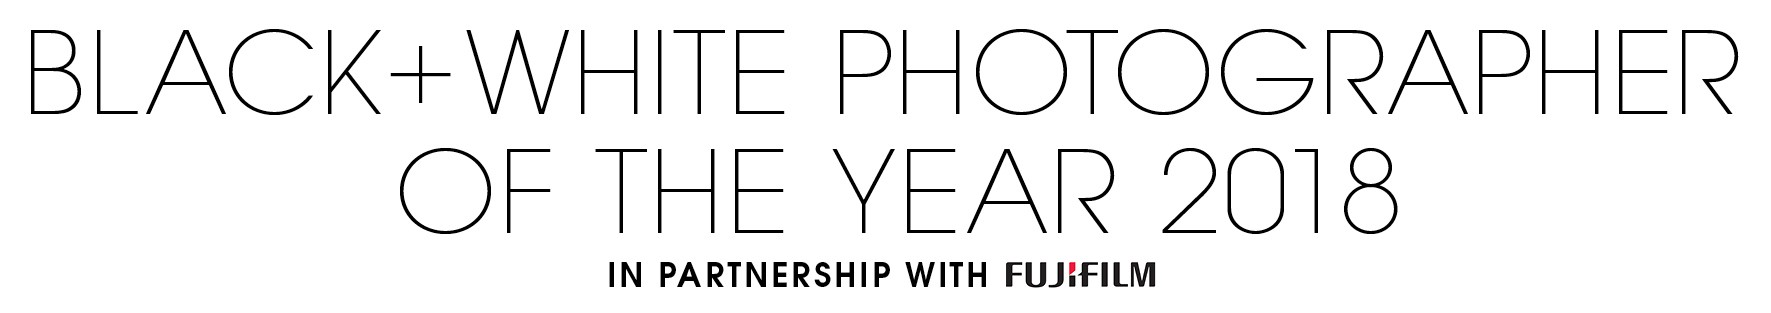 Black+White Photographer of the Year 2018